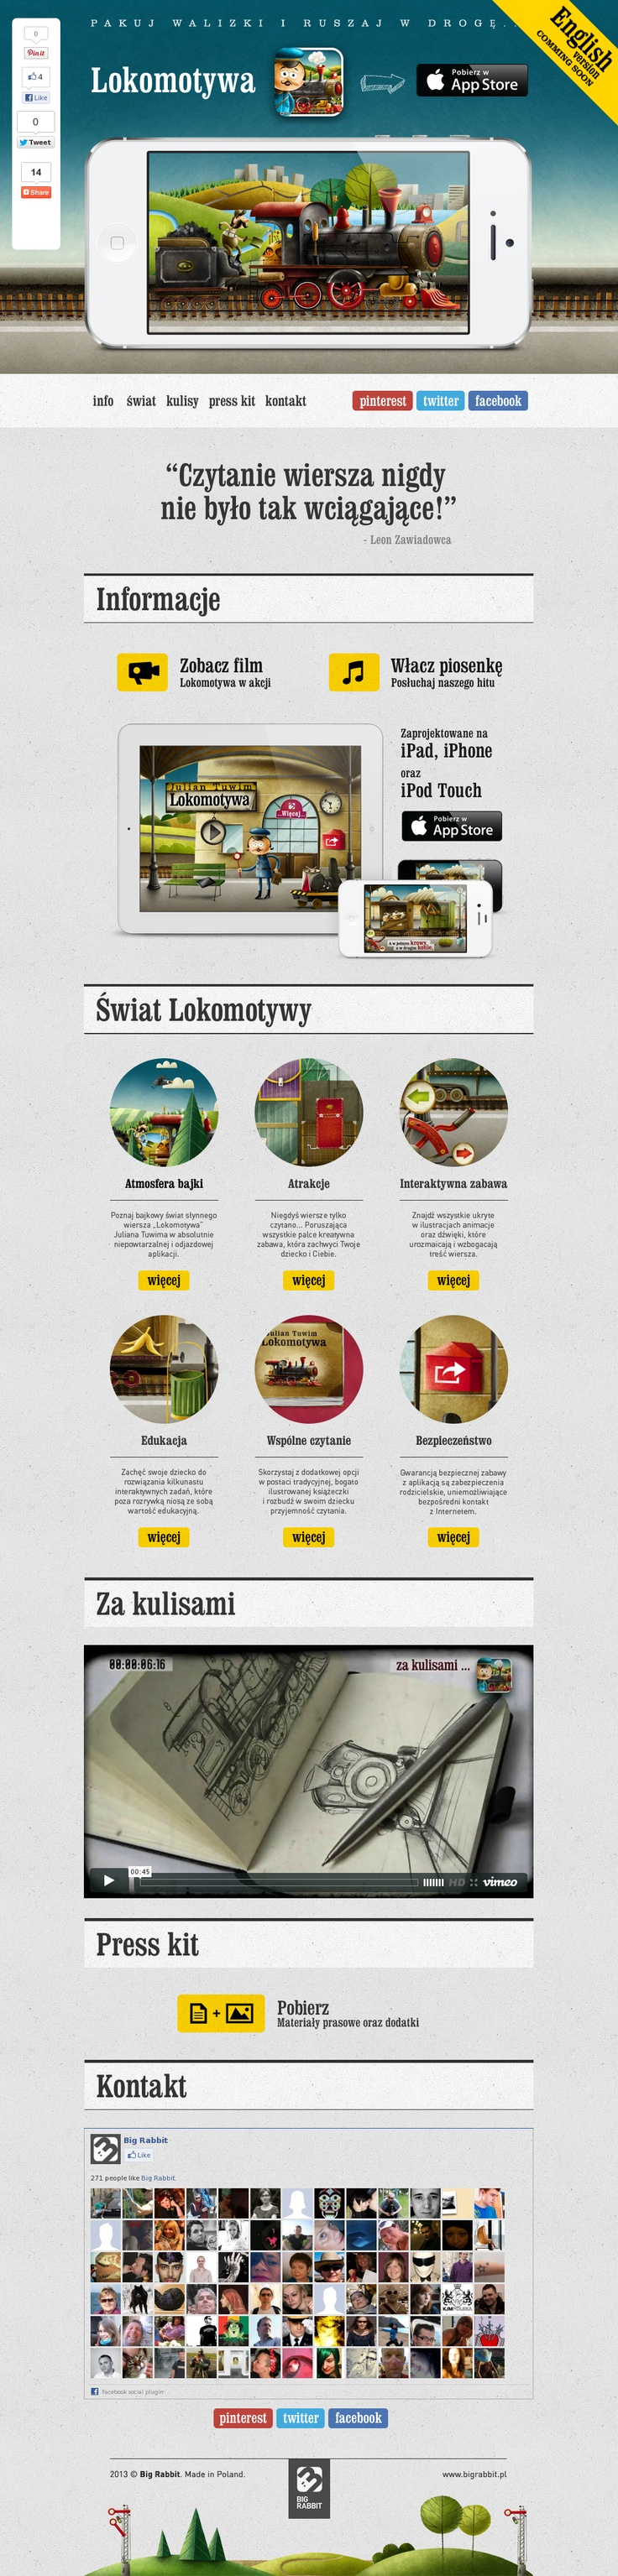 http://lokomotywa.bigrabbit.pl    #Lokomotywa - Julian Tuwim, #aplikacja na #iPhone, #iPad, #iPod Touch     #Locomotive - Julian Tuwim, #iPhone, #iPad, #iPod Touch #iOS #App